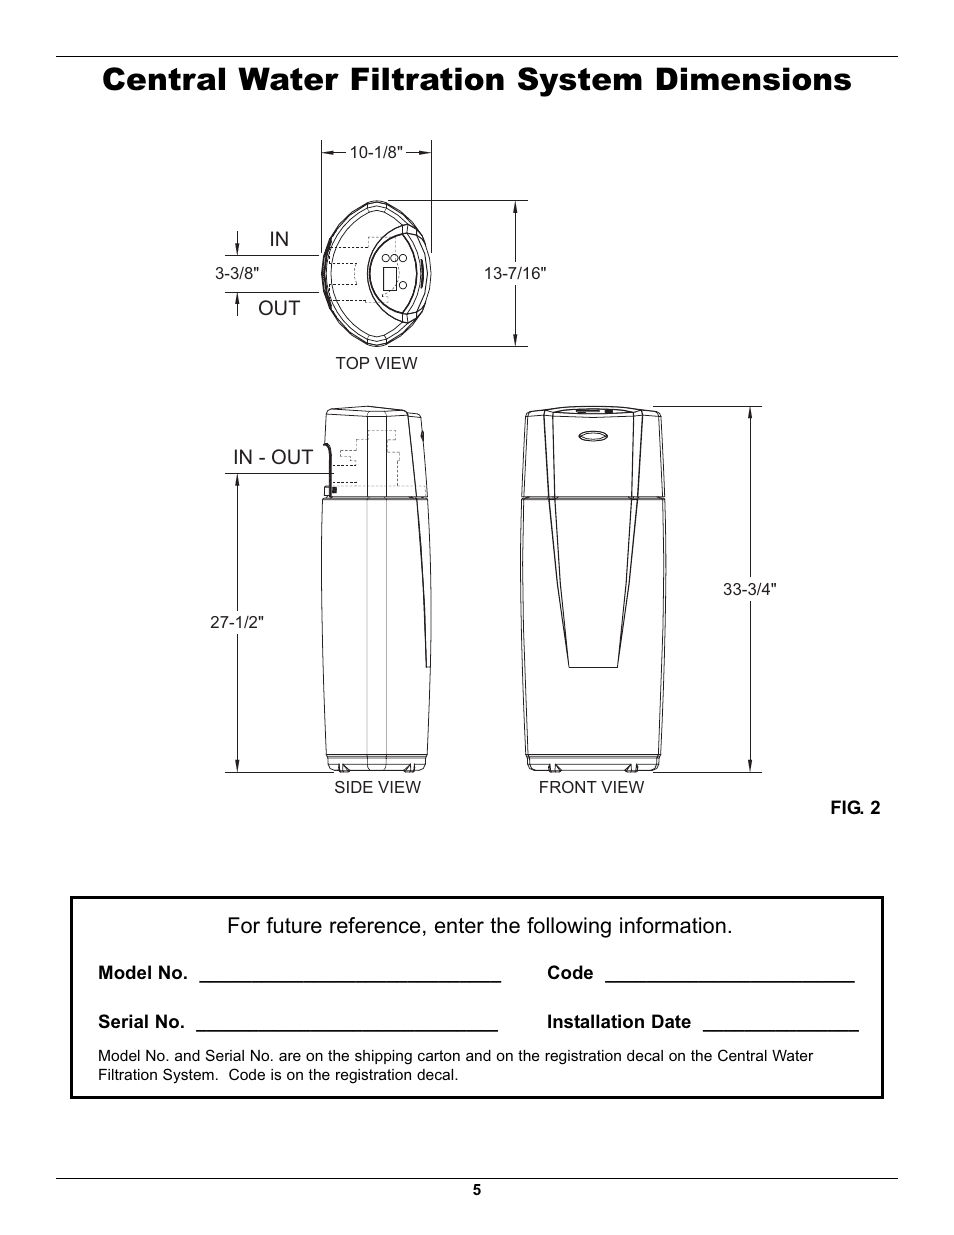 Central Water Filtration System Dimensions Whirlpool Whelj1 User Manual Page 5 27